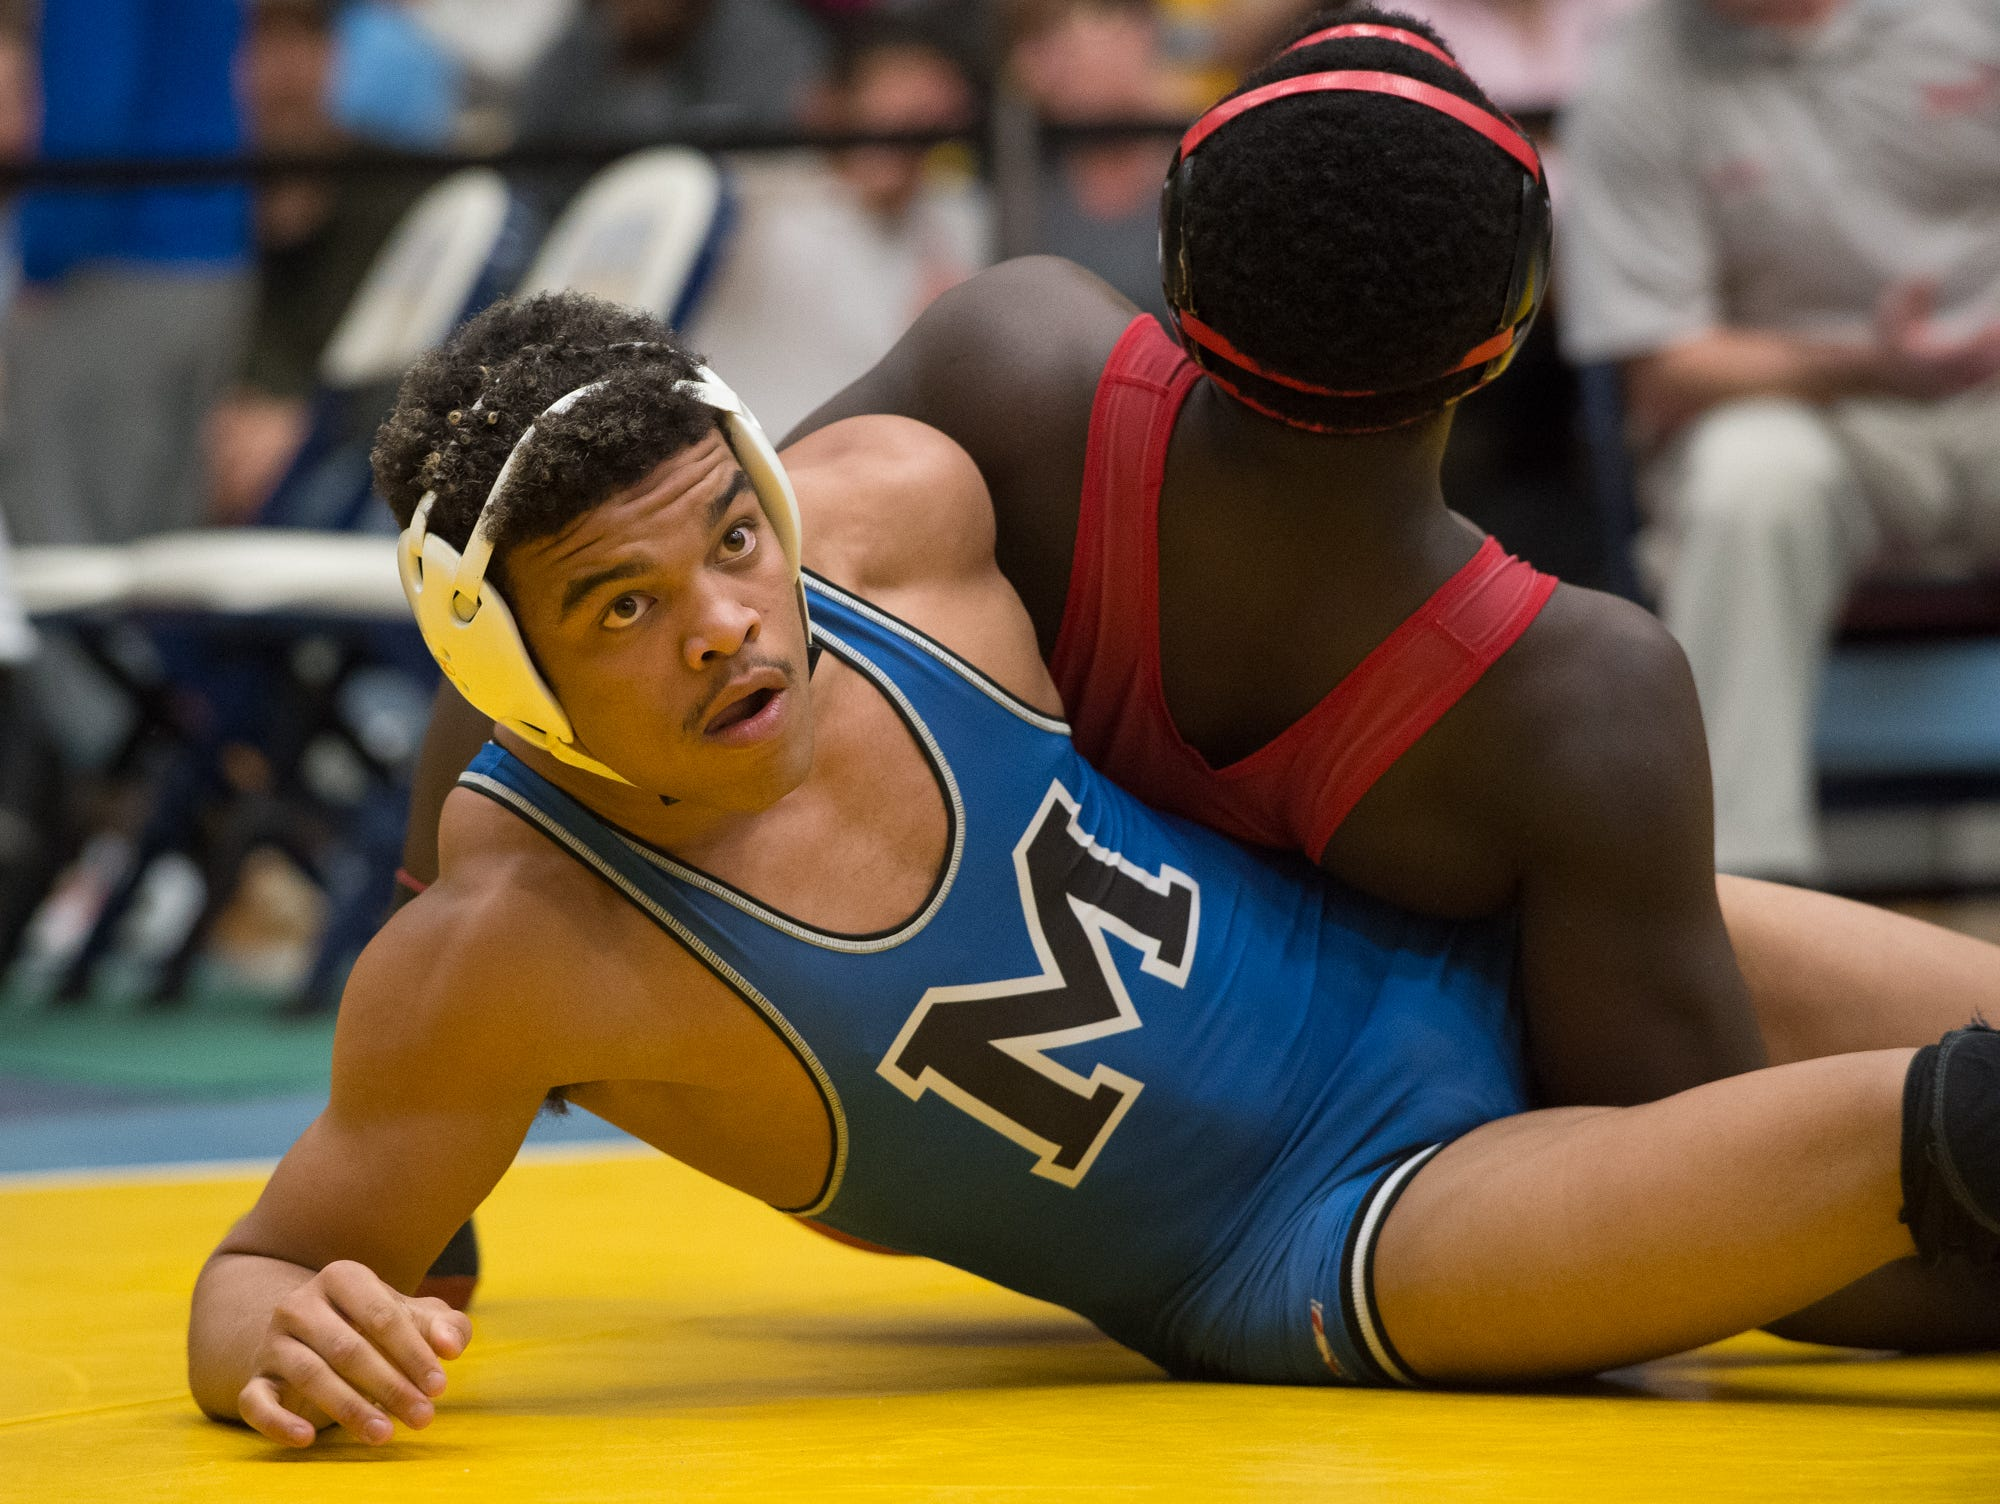 Middletown's Isiah Mitchell wrestles Smyrna's Larsen Wilson in the 170 pound quarterfinals at the DIAA Individual State Tournament at Cape Henlopen High School.